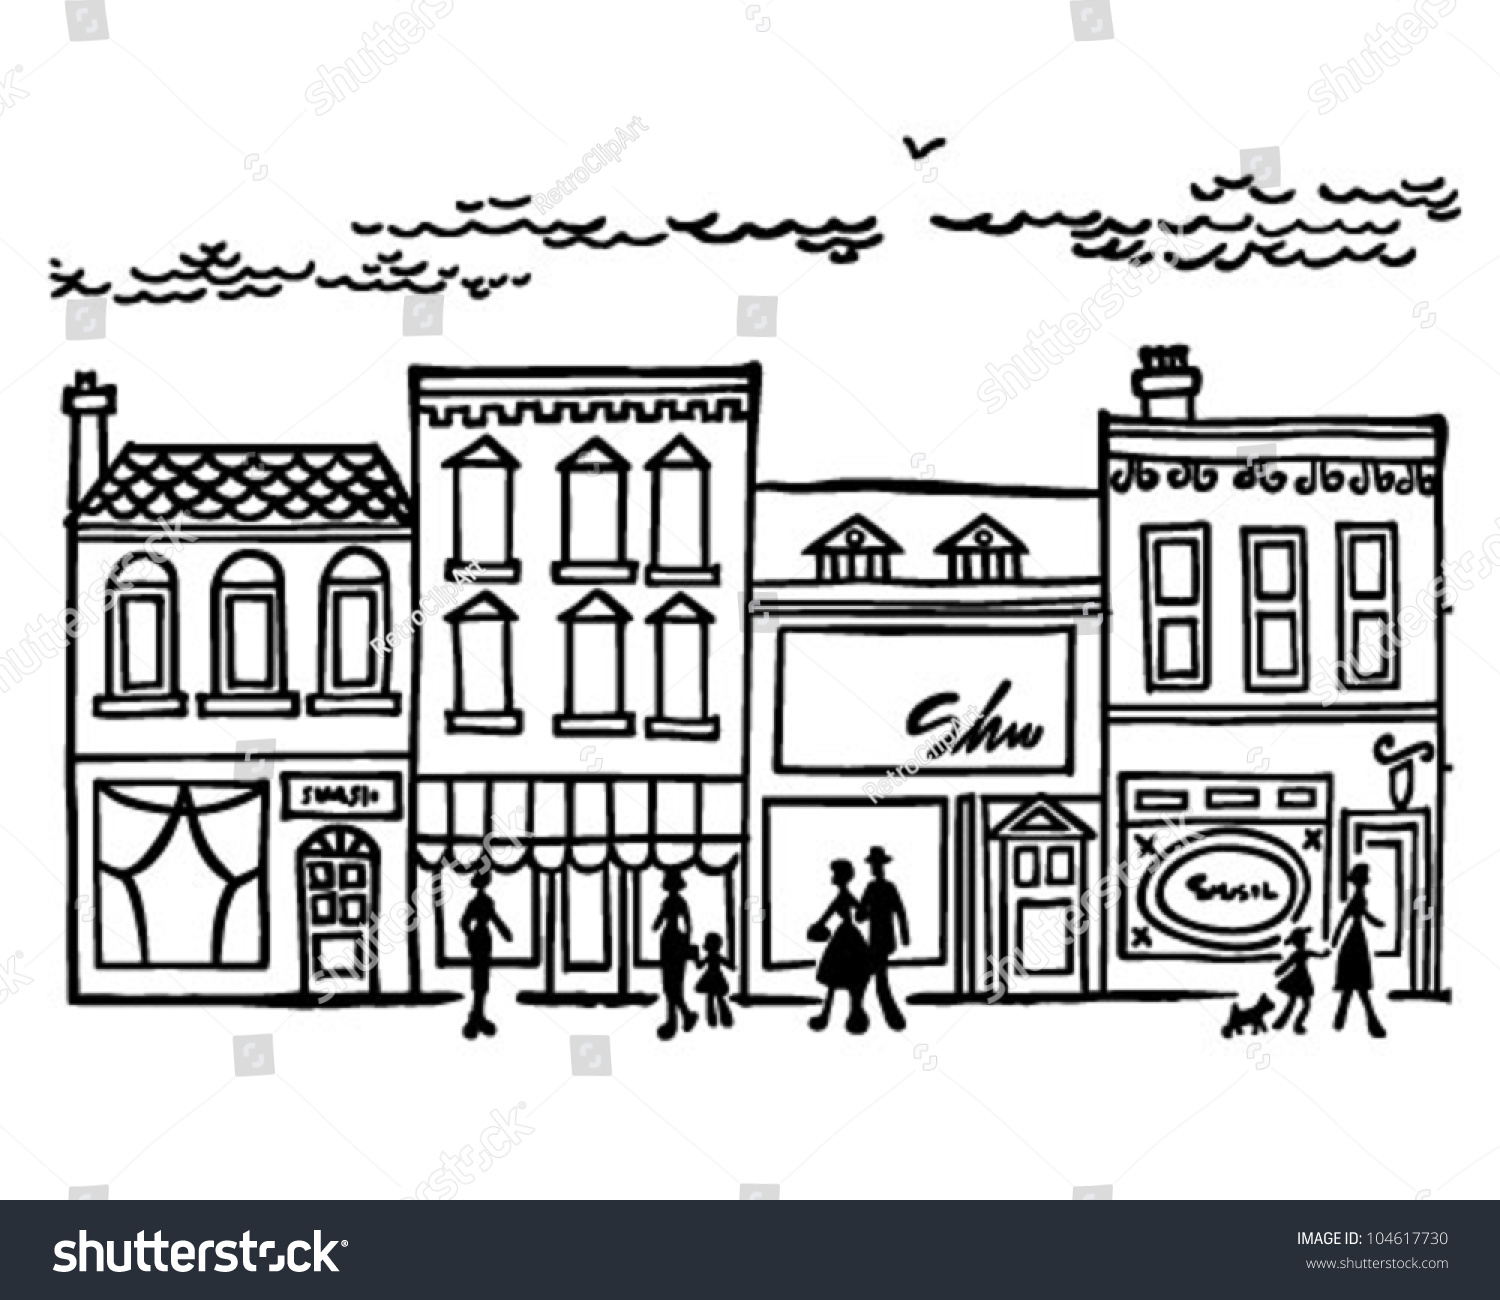 city centre clipart - photo #44